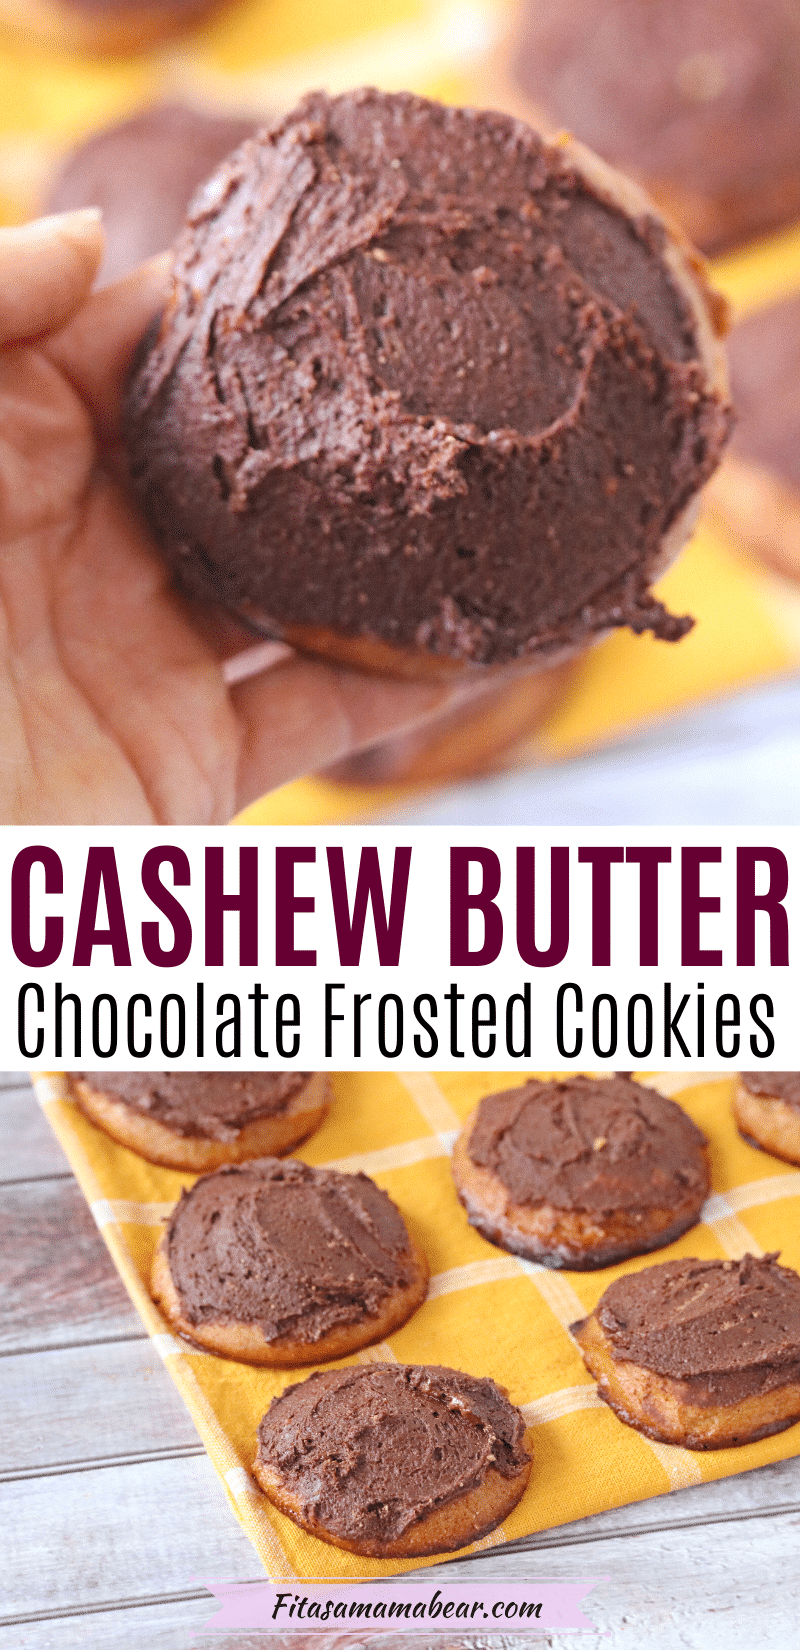 Pinterest image with text: two images of cashew butter cookies the first a close up being held in a hand and topped with chocolate the second the cookies are lined on a yellow napkin